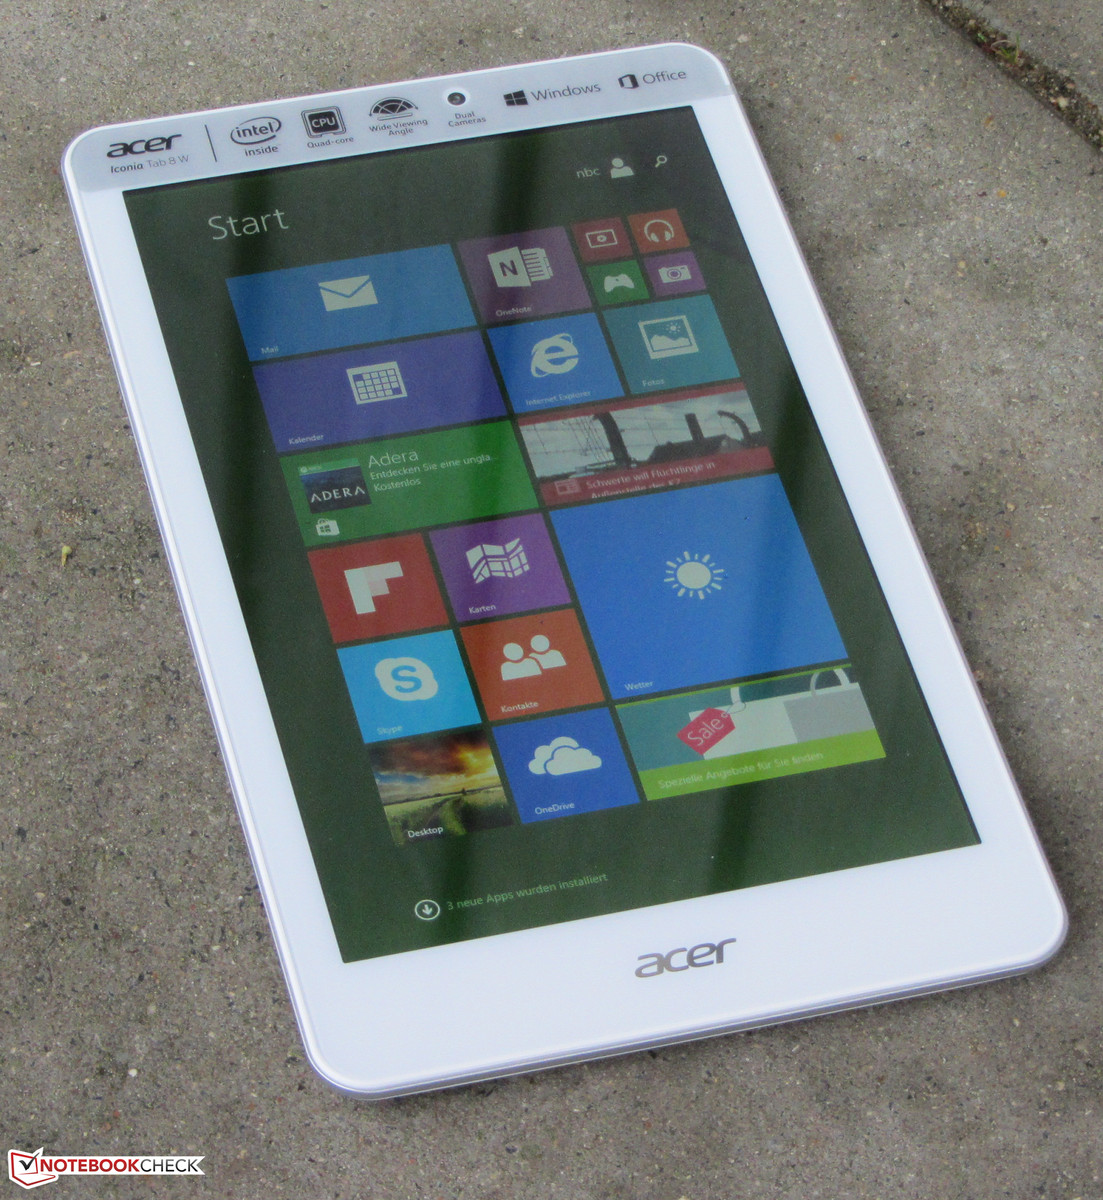 Acer Iconia Tab 8 W W1 810 16HN Tablet Review